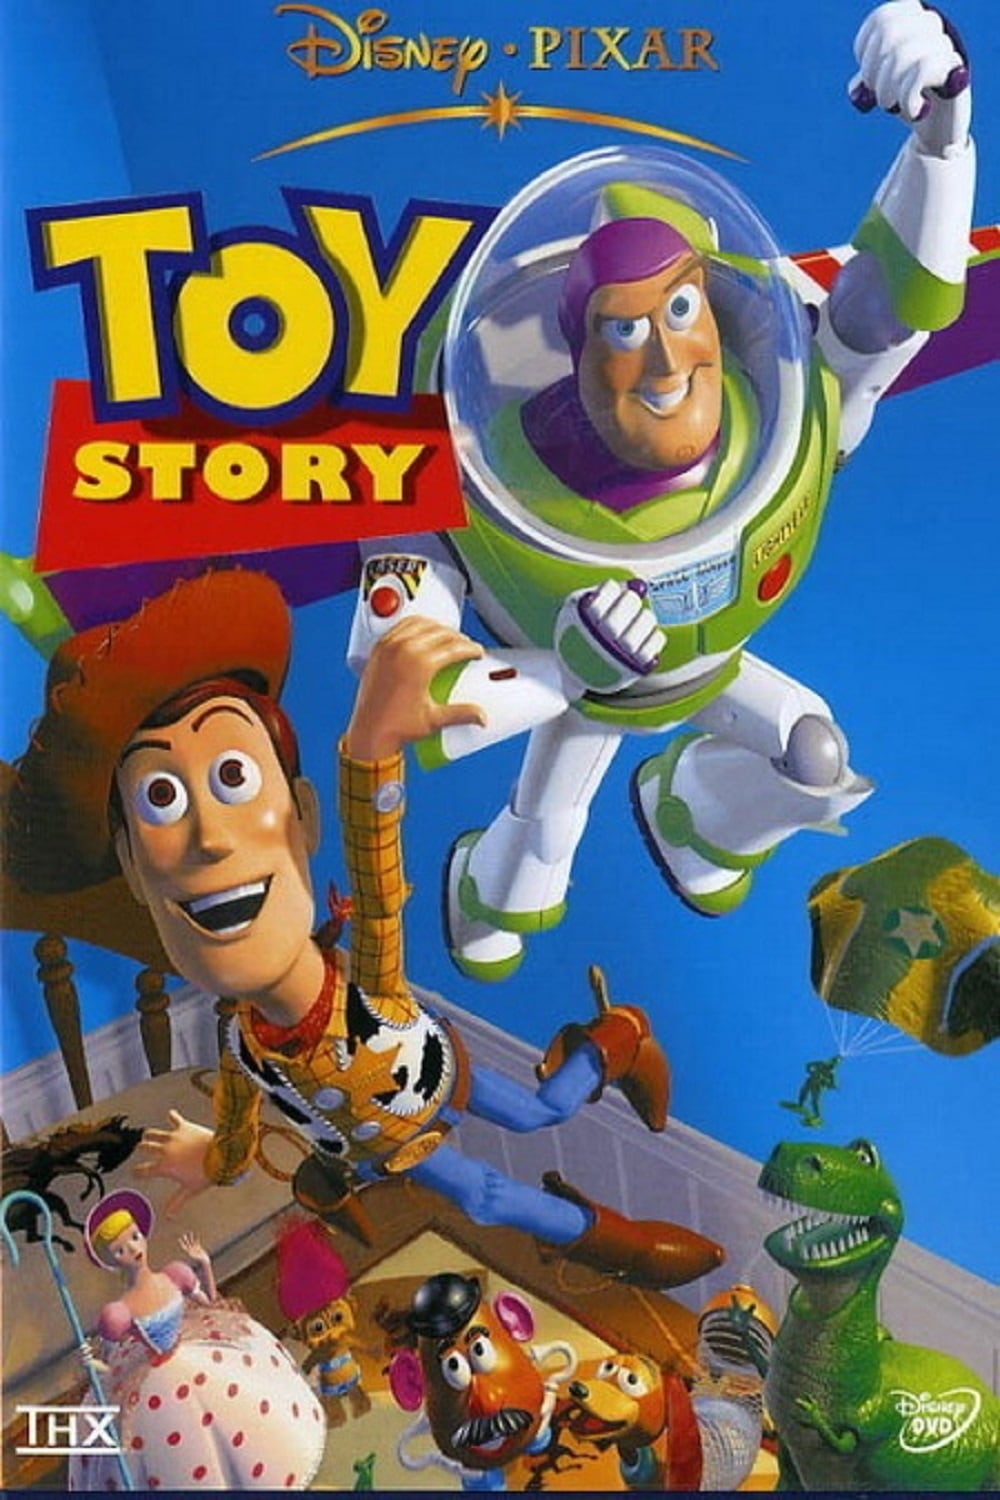 Toy Story (1995) • Moviesfilmcinecom. Fundraiser Flyer Examples. Graduation Gifts For Daughter. Did Lil Pump Graduate High School. Best Tow Truck Invoice Template. Dental Hygienist Graduation Gifts. Licuado De Banana. Ppt Template For Business. Treasurer039s Report Template Non Profit